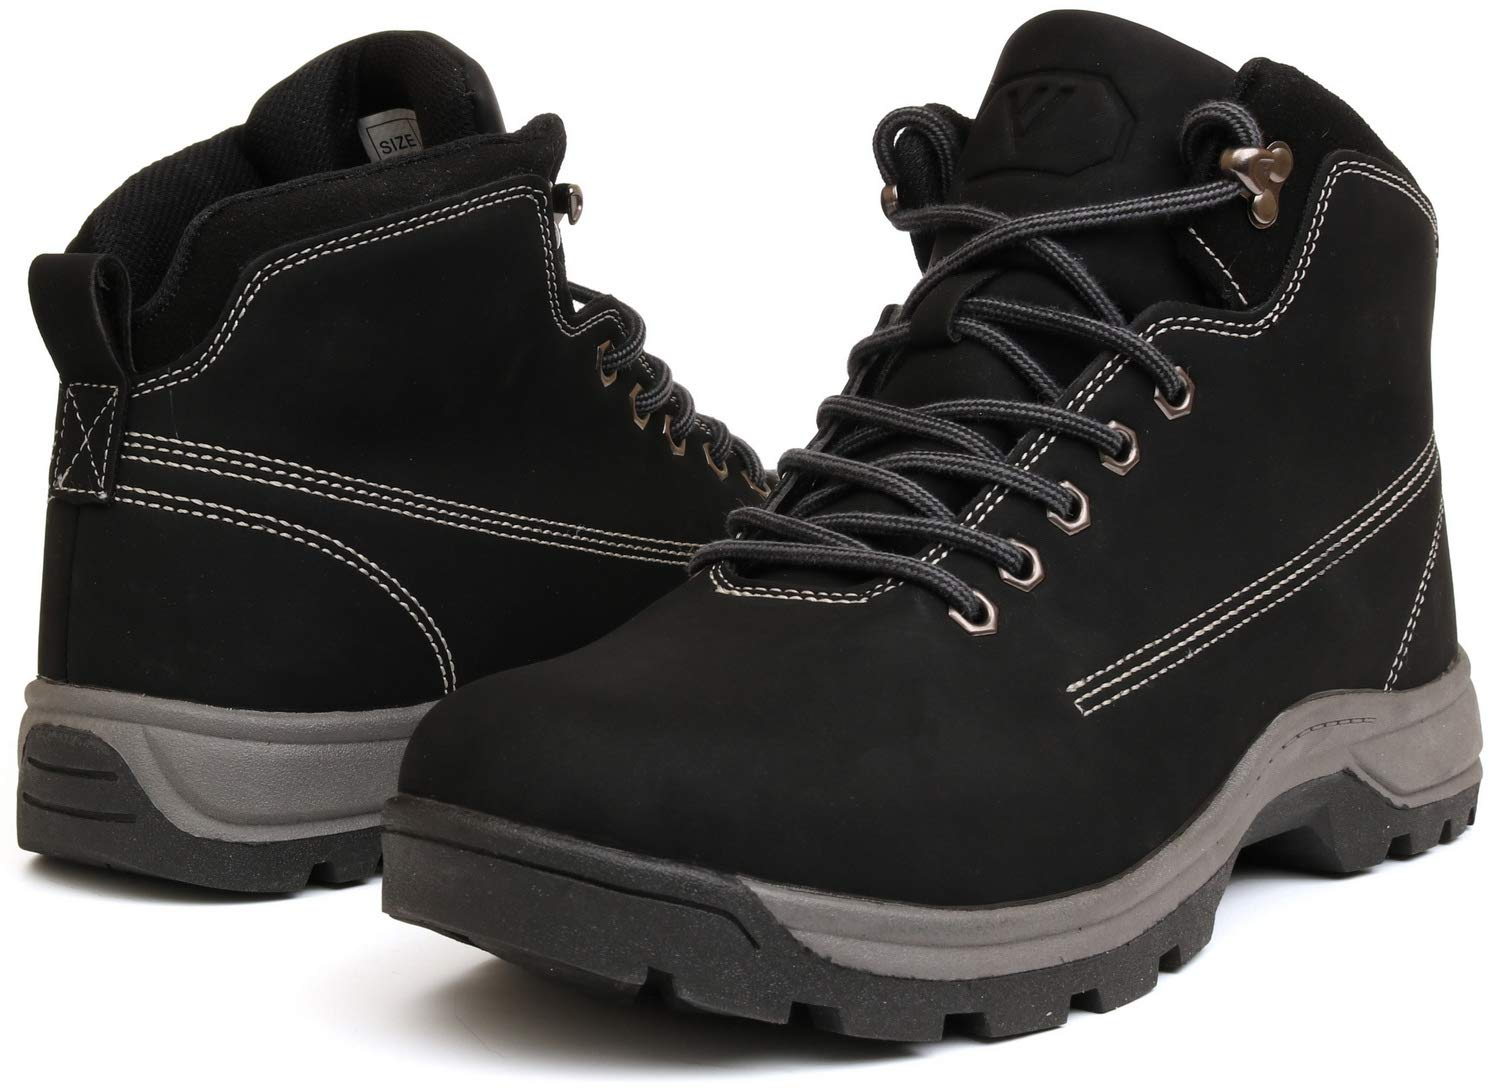 WHITIN Men's Mid Soft Toe Leather Insulated Work Boots Construction Rubber Sole Roofing Waterproof for Outdoor Hiking Winter Snow Concrete Backpacking Mountaineering Hiker Field Black Size 12 by WHITIN